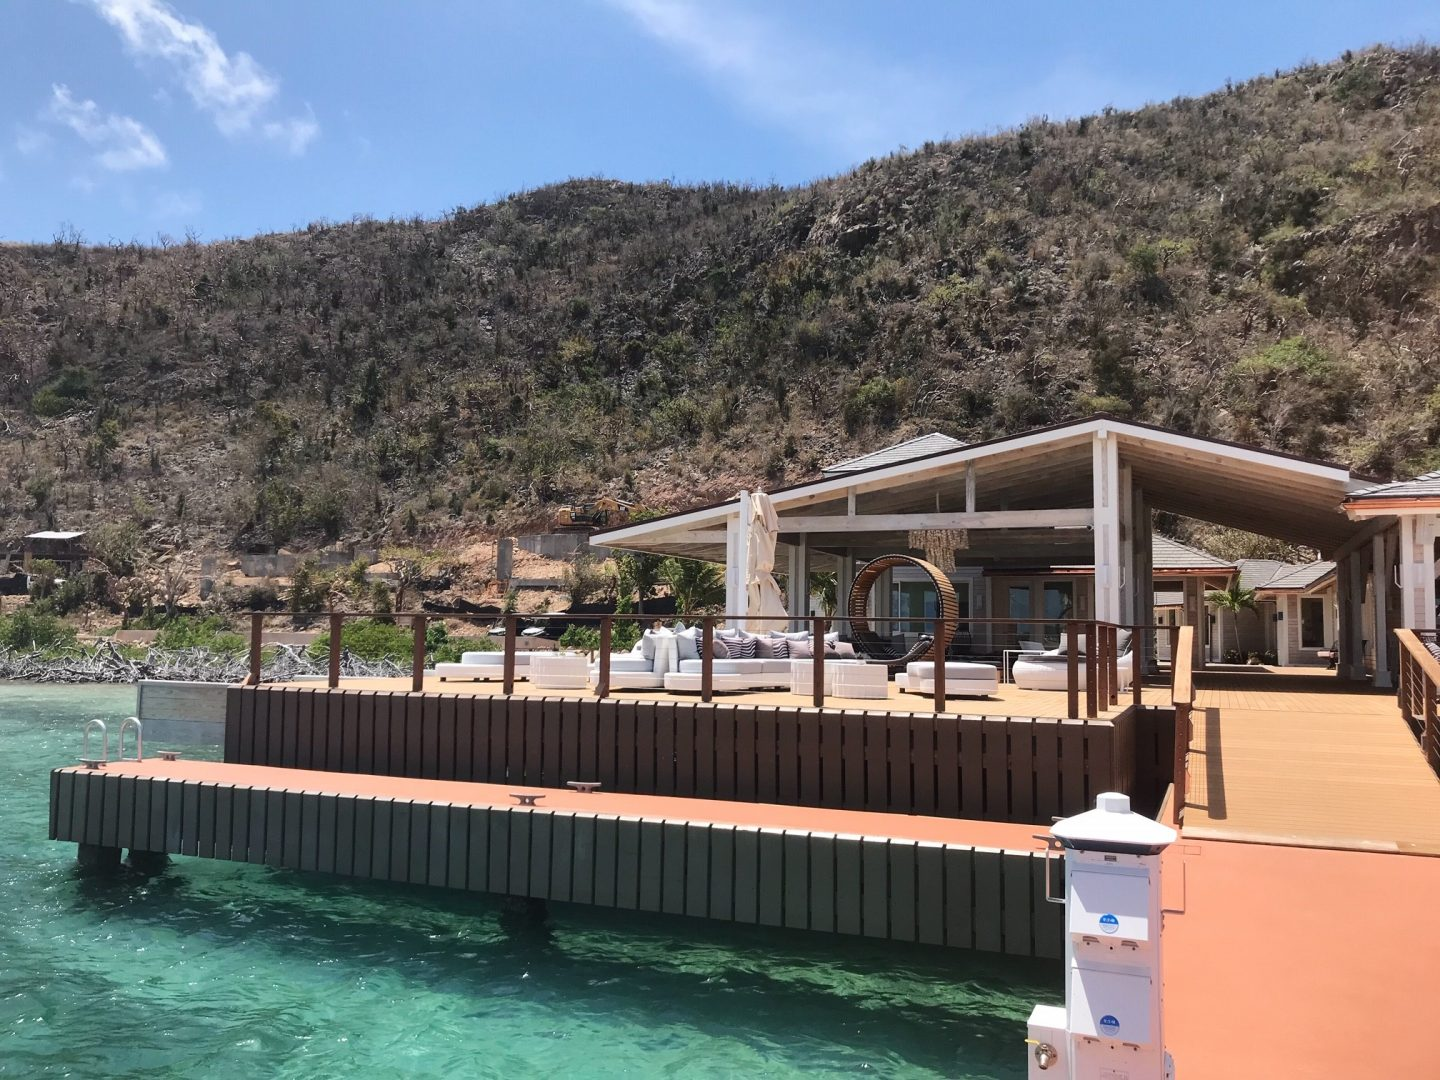 Nova Restaurant, Oil Nut Bay Virgin Gorda